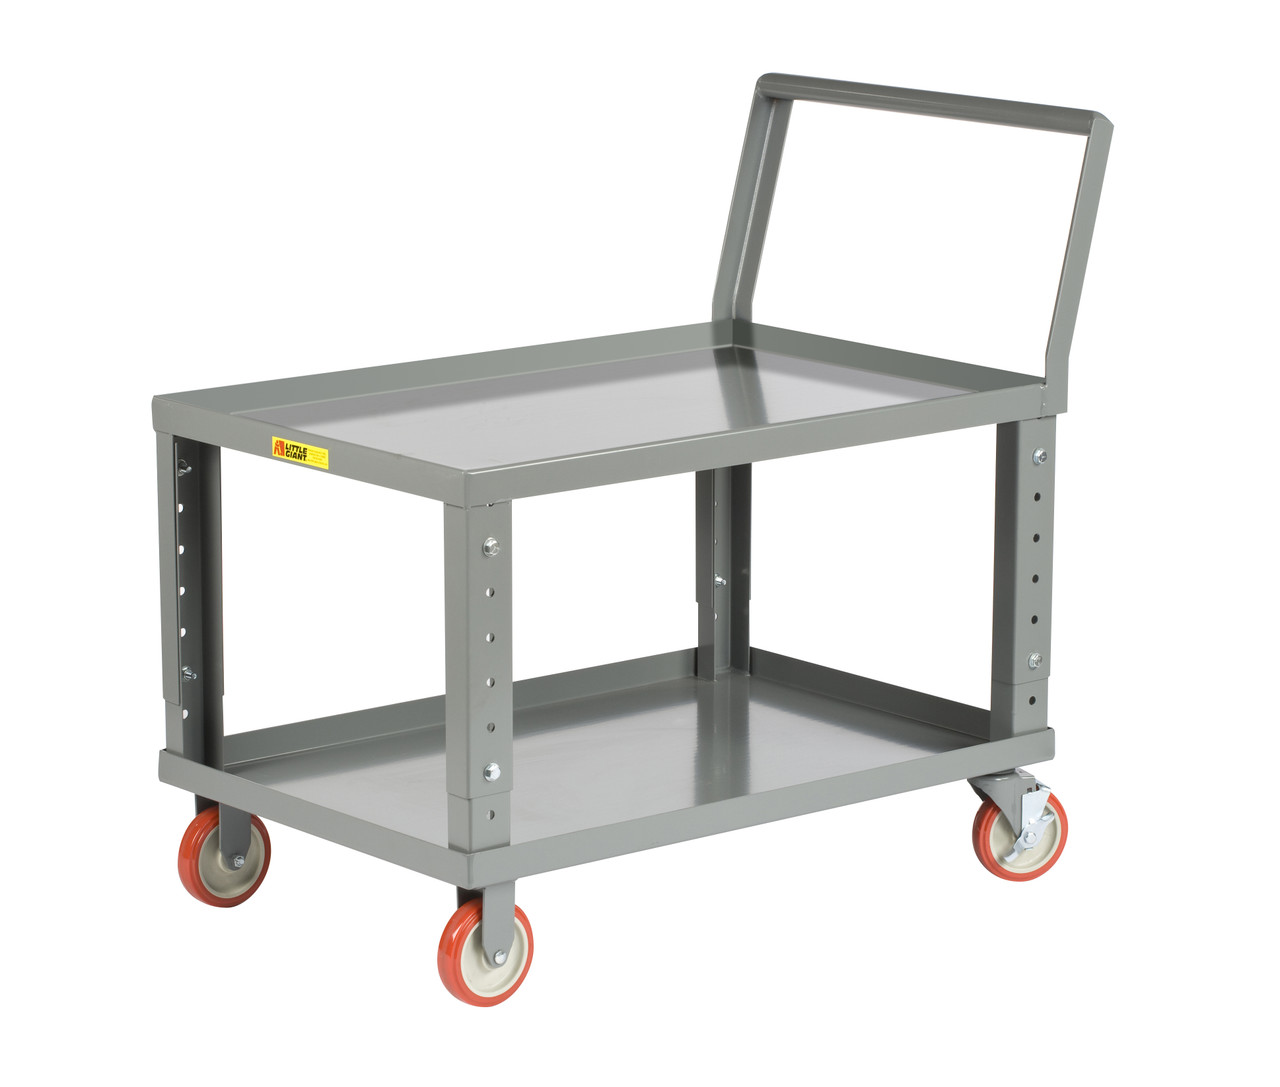 Ergonomic Adjustable Height Shelf Truck